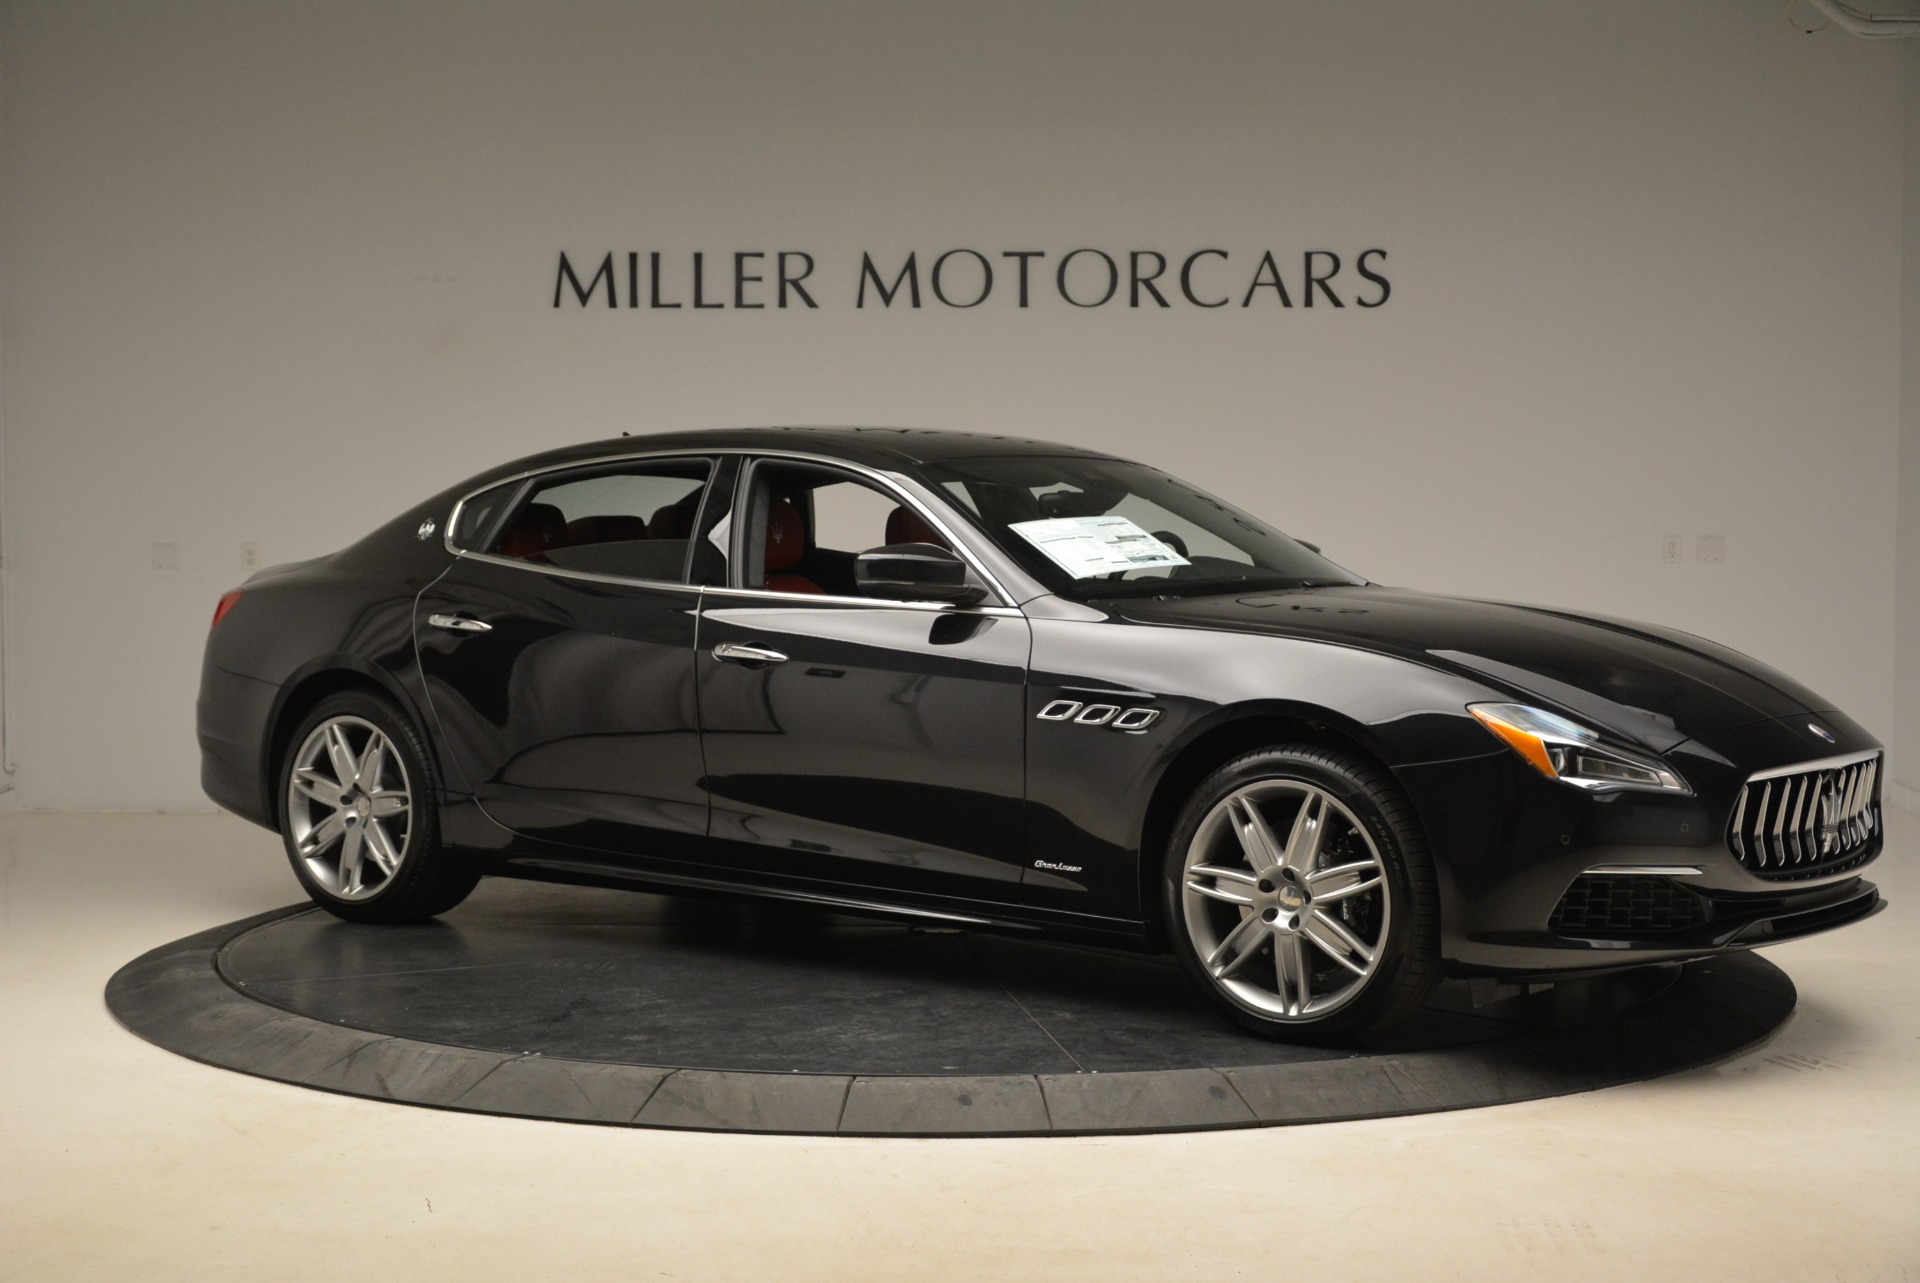 New 2018 Maserati Quattroporte S Q4 GranLusso For Sale In Westport, CT 2186_p11